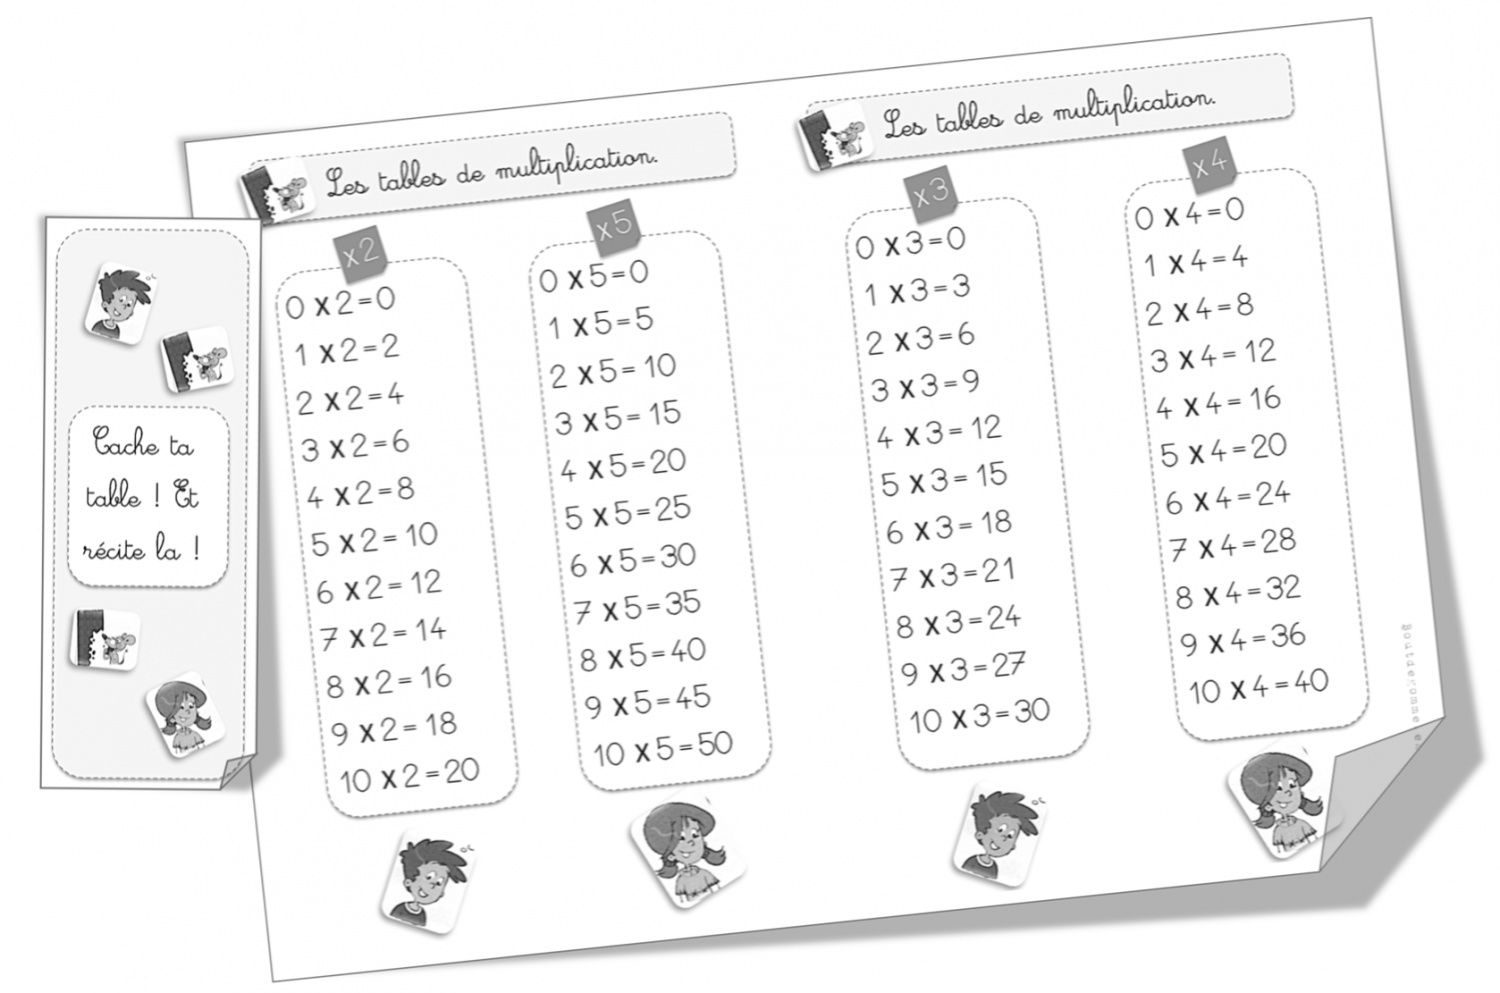 Valuation table de multiplication ce2 imprimer for Apprendre multiplication ce2